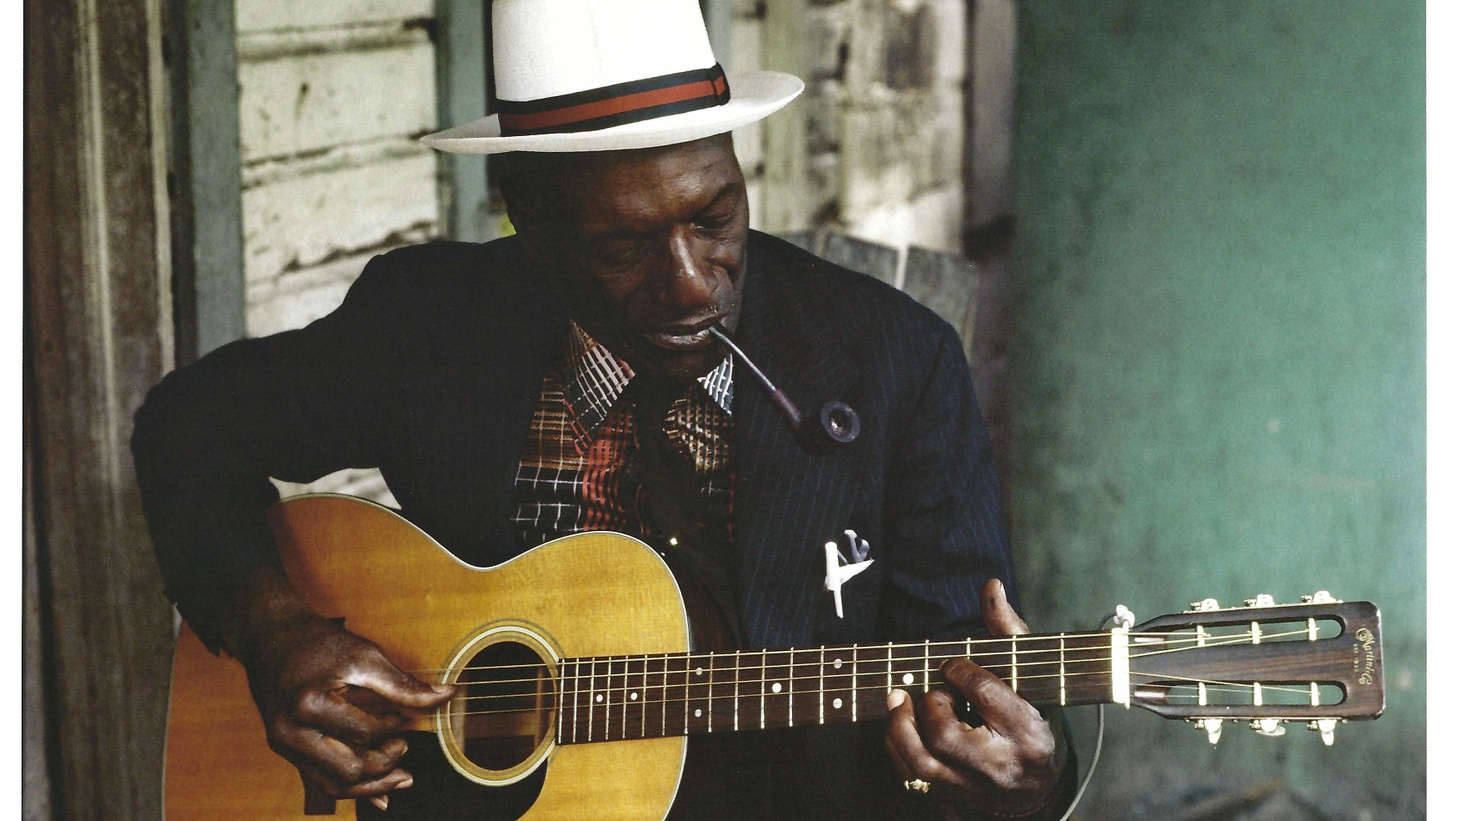 You may not have heard of Bahamian guitarist Joseph Spence, but his guitar work was significant in the '60s and directly influenced many artists, including Richard Thompson and Taj Mahal.